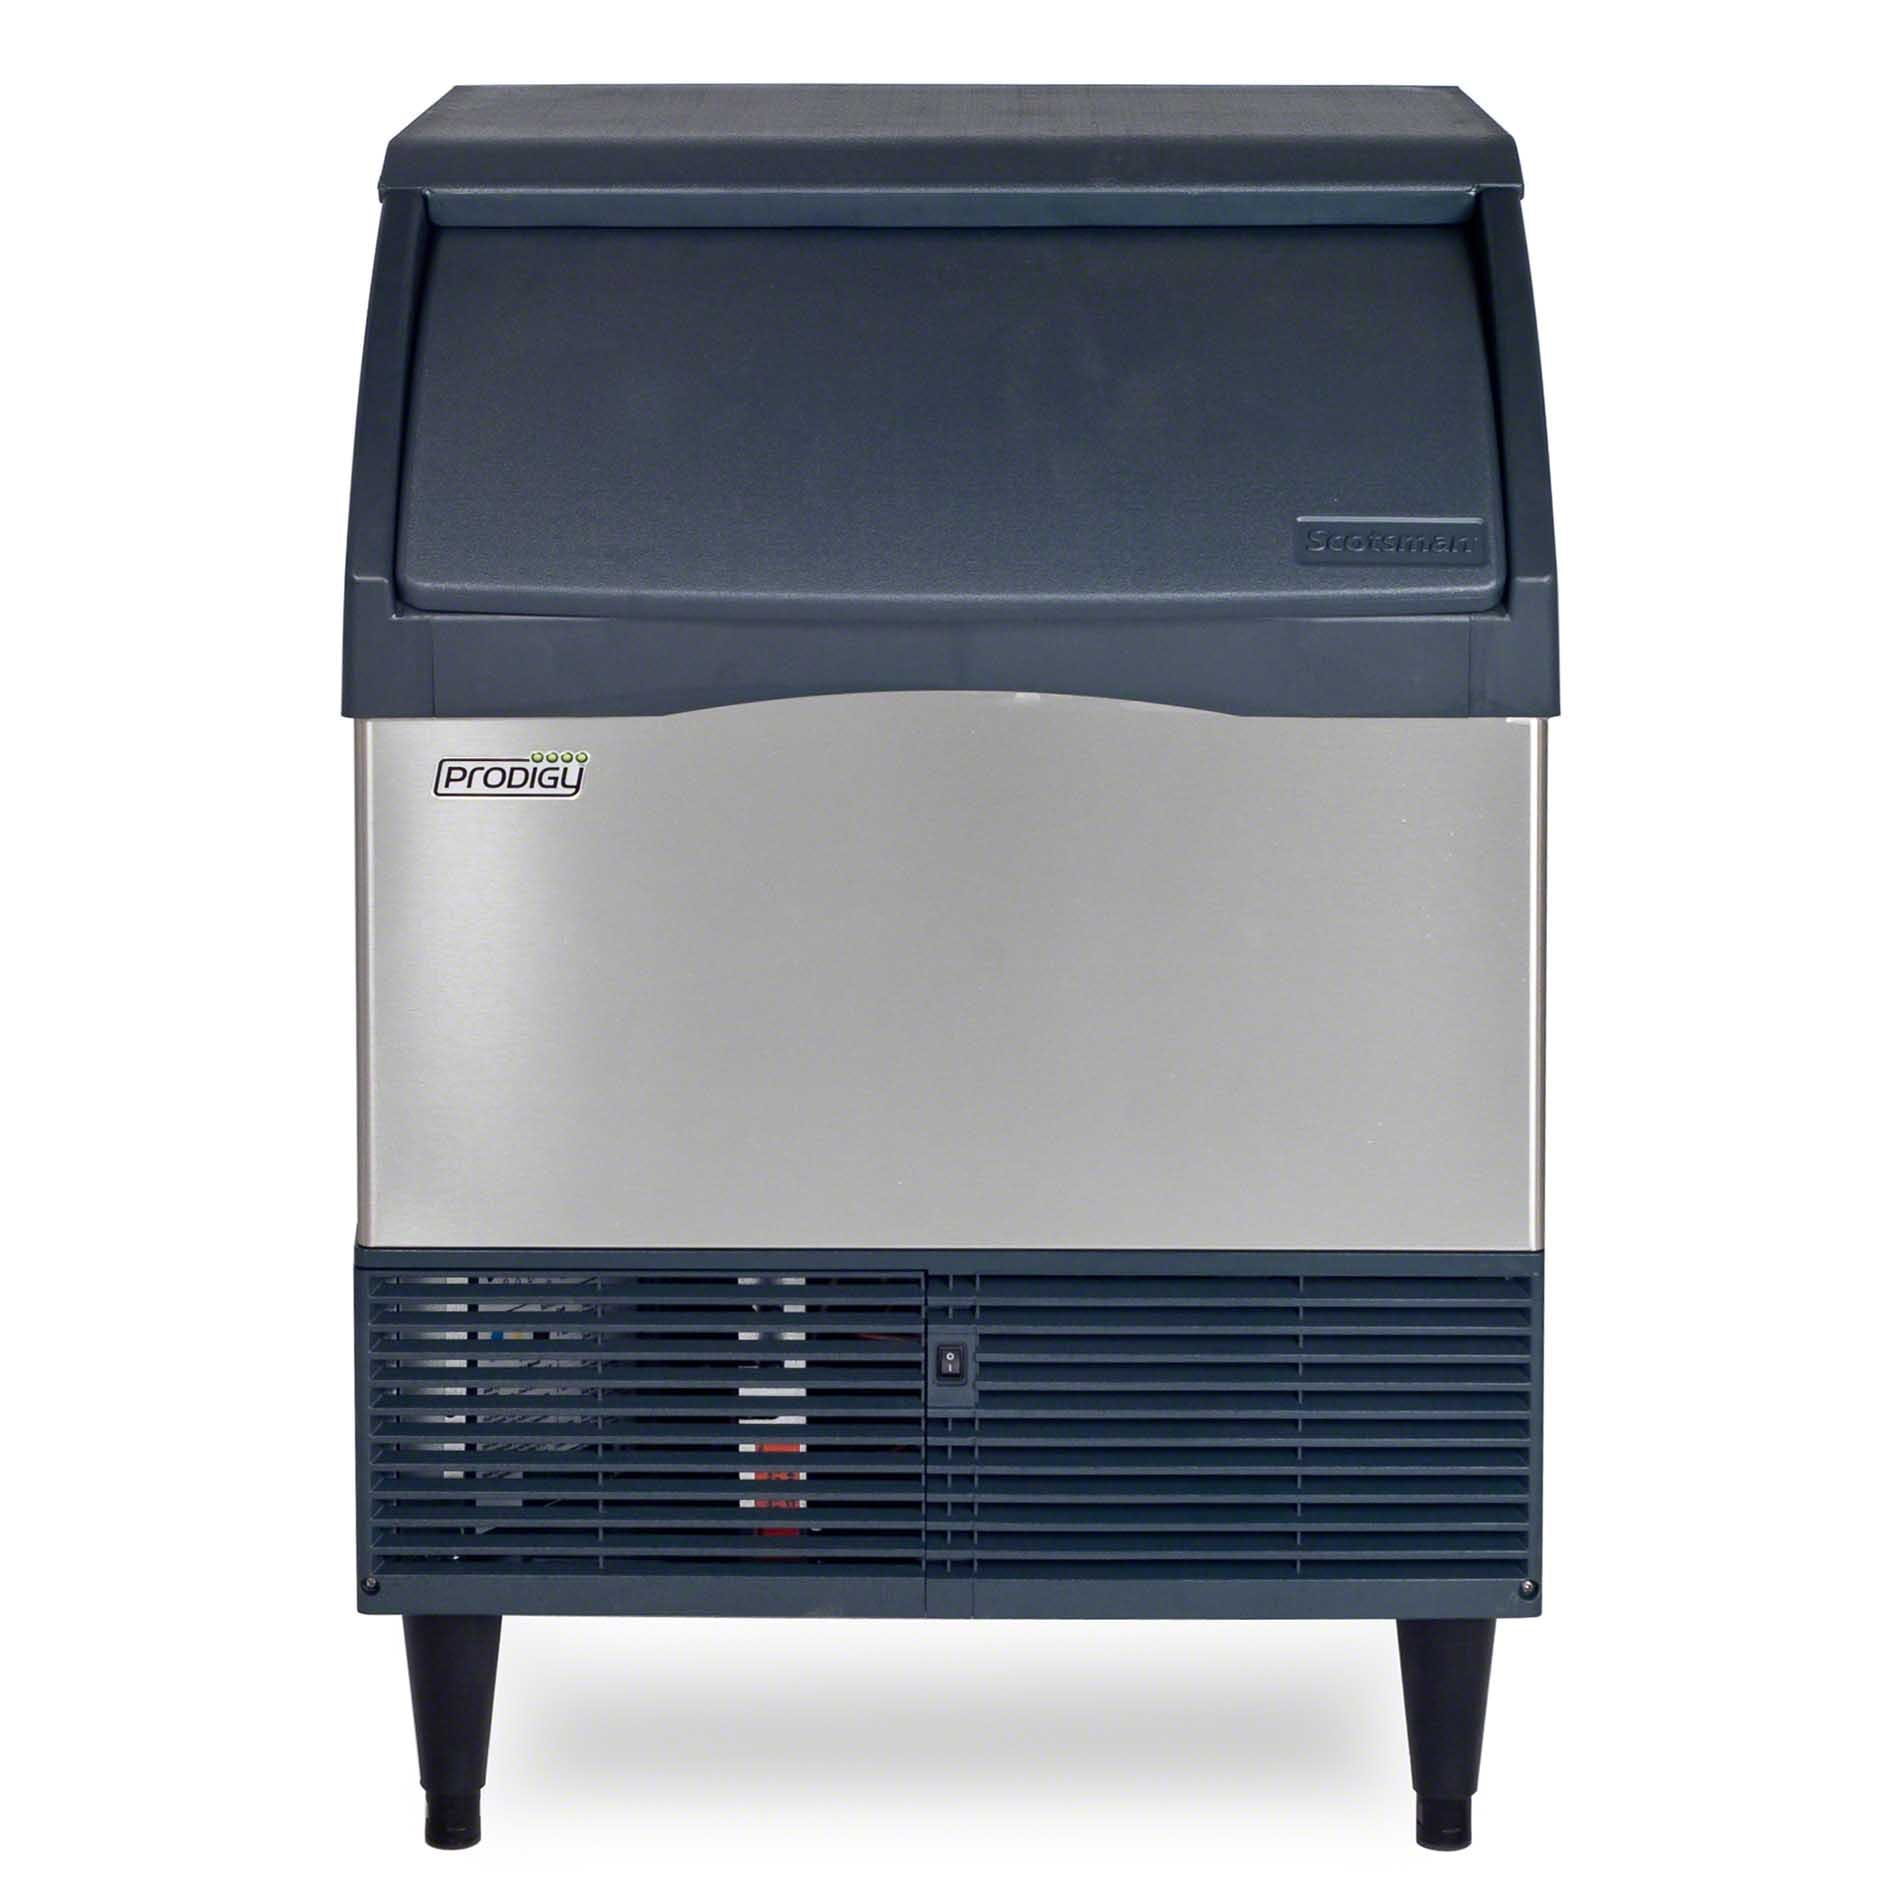 Scotsman - CU1526MA-1A 150 lb Self-Contained Cube Ice Machine - Prodigy Series - sold by Food Service Warehouse